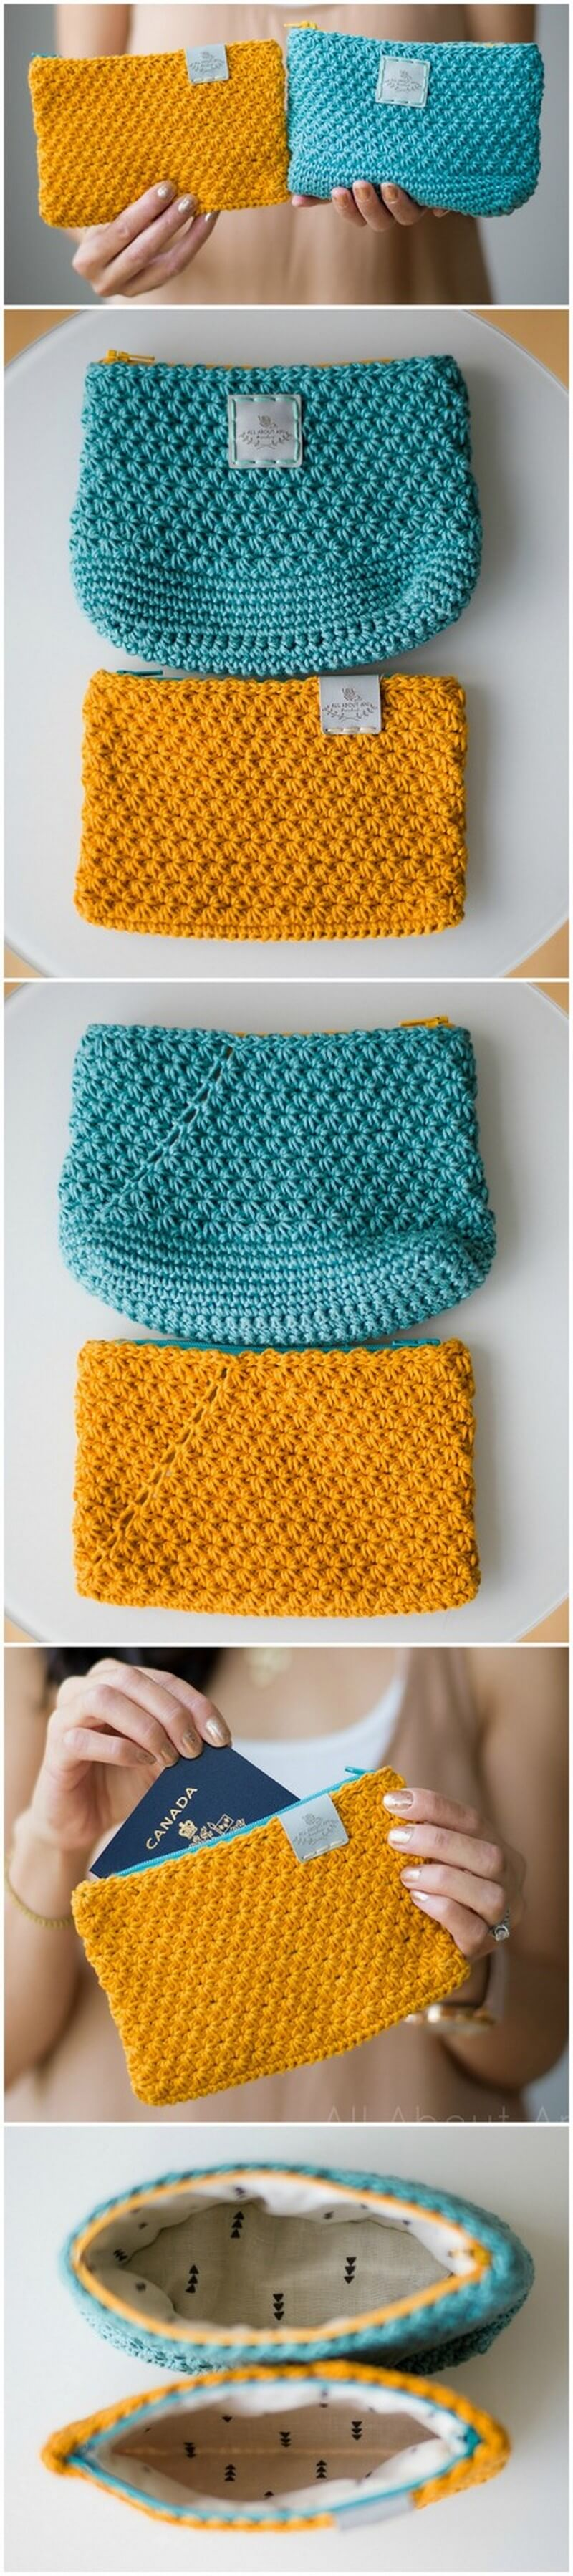 Crochet Bag Pattern (3)